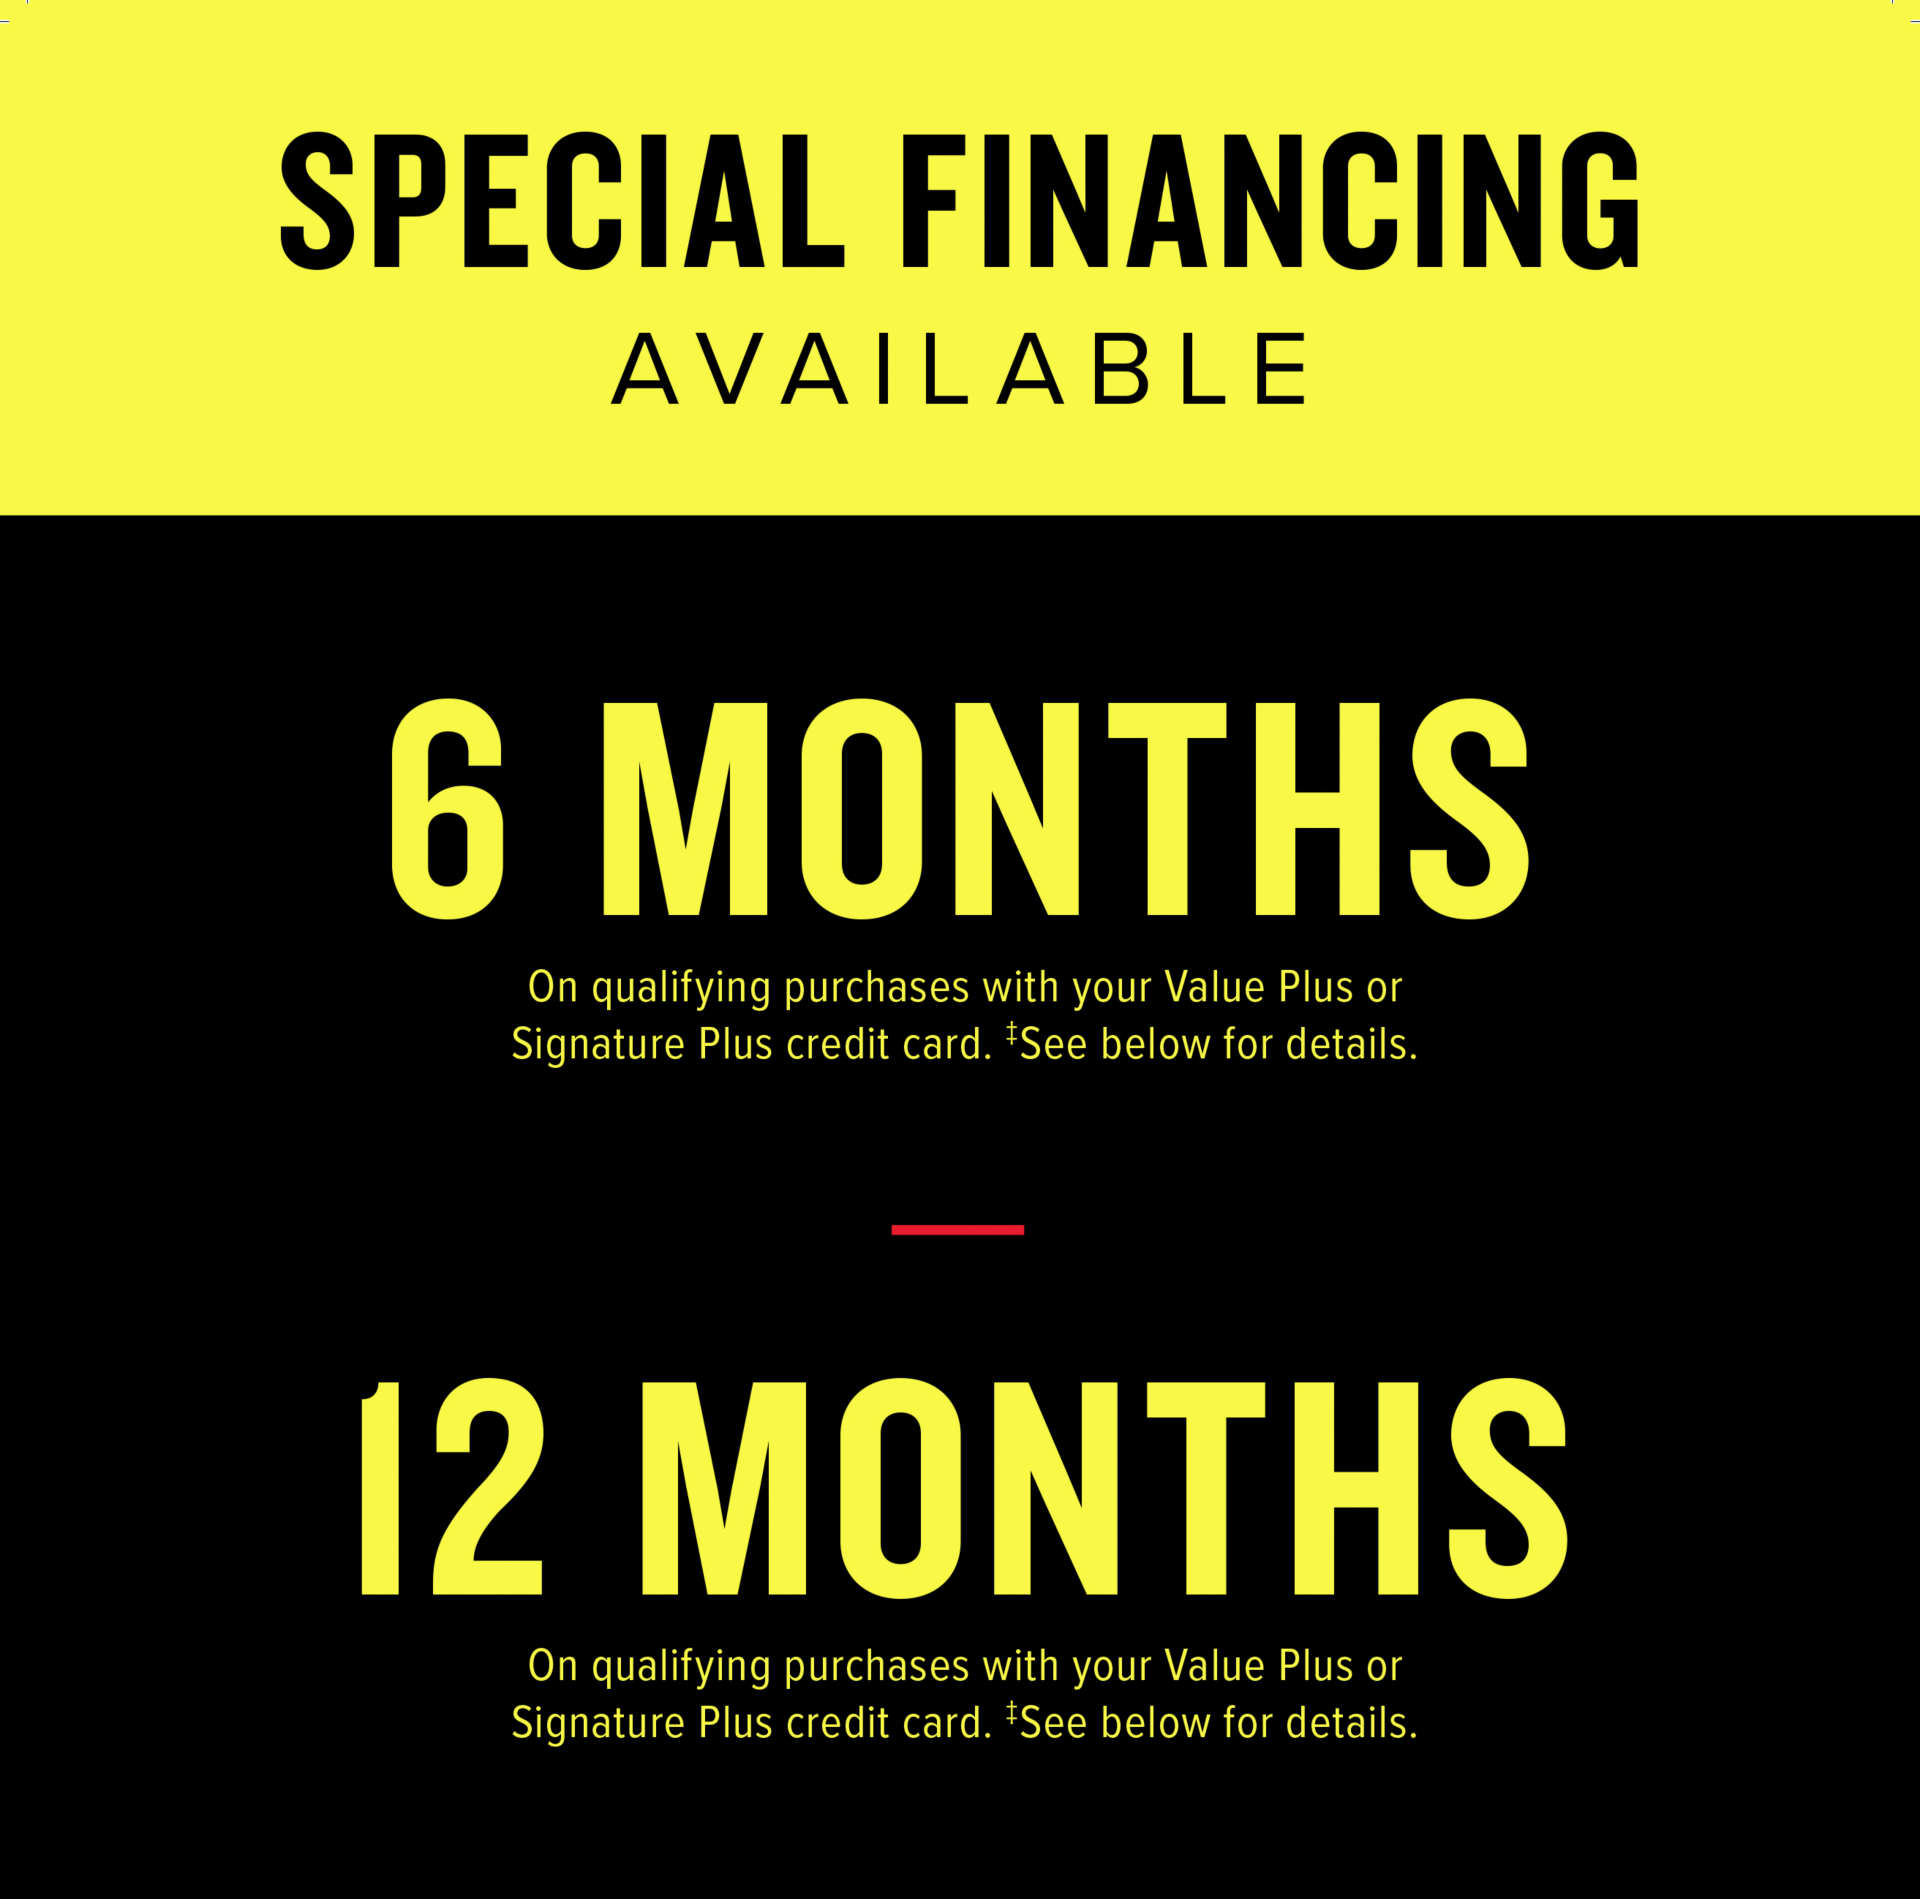 special financing